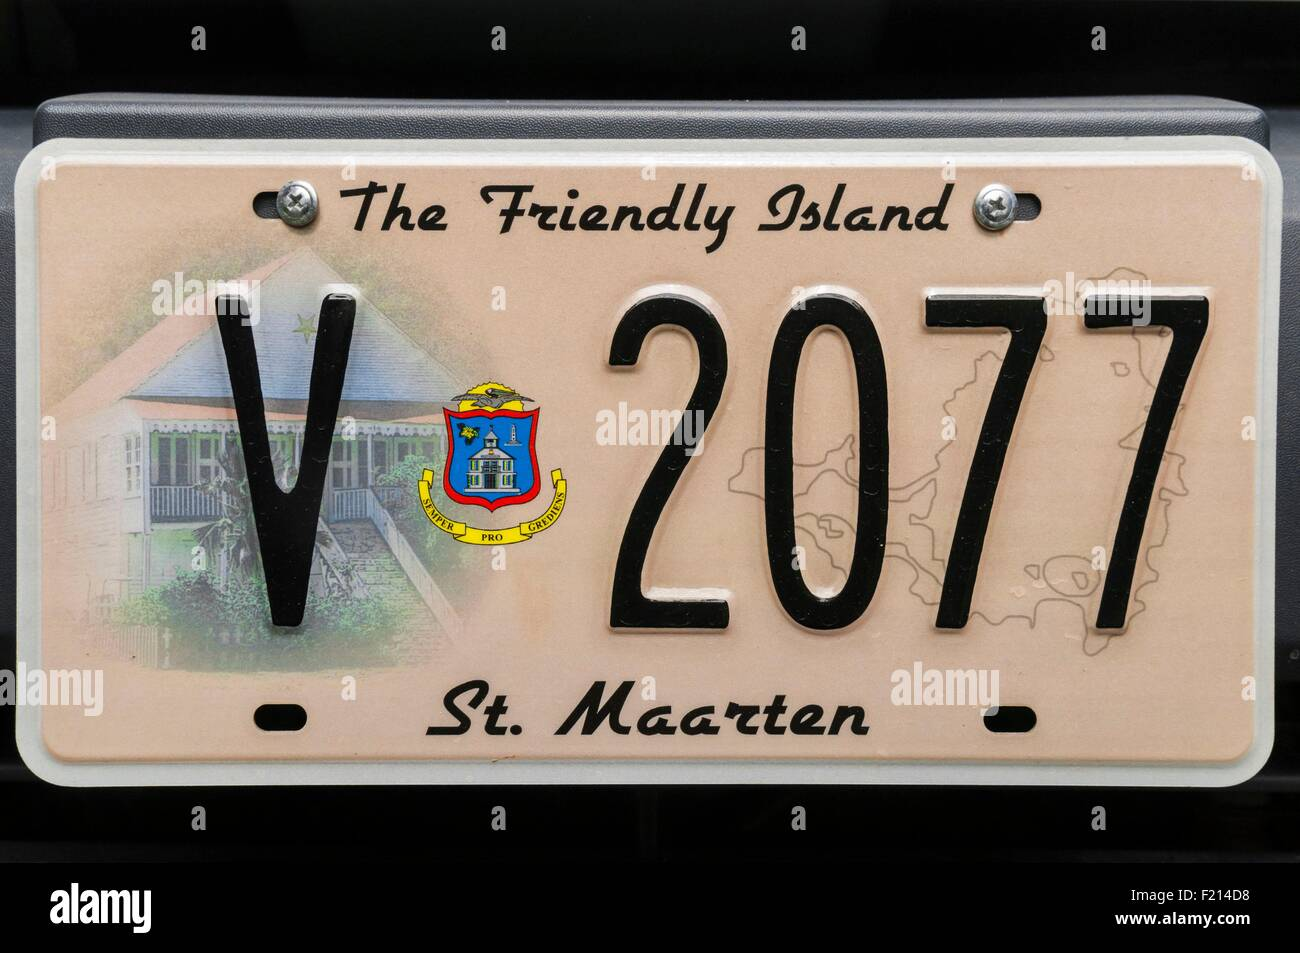 France, French West Indies, Saint Martin island, registration plate and local island devise on local vehicle - Stock Image